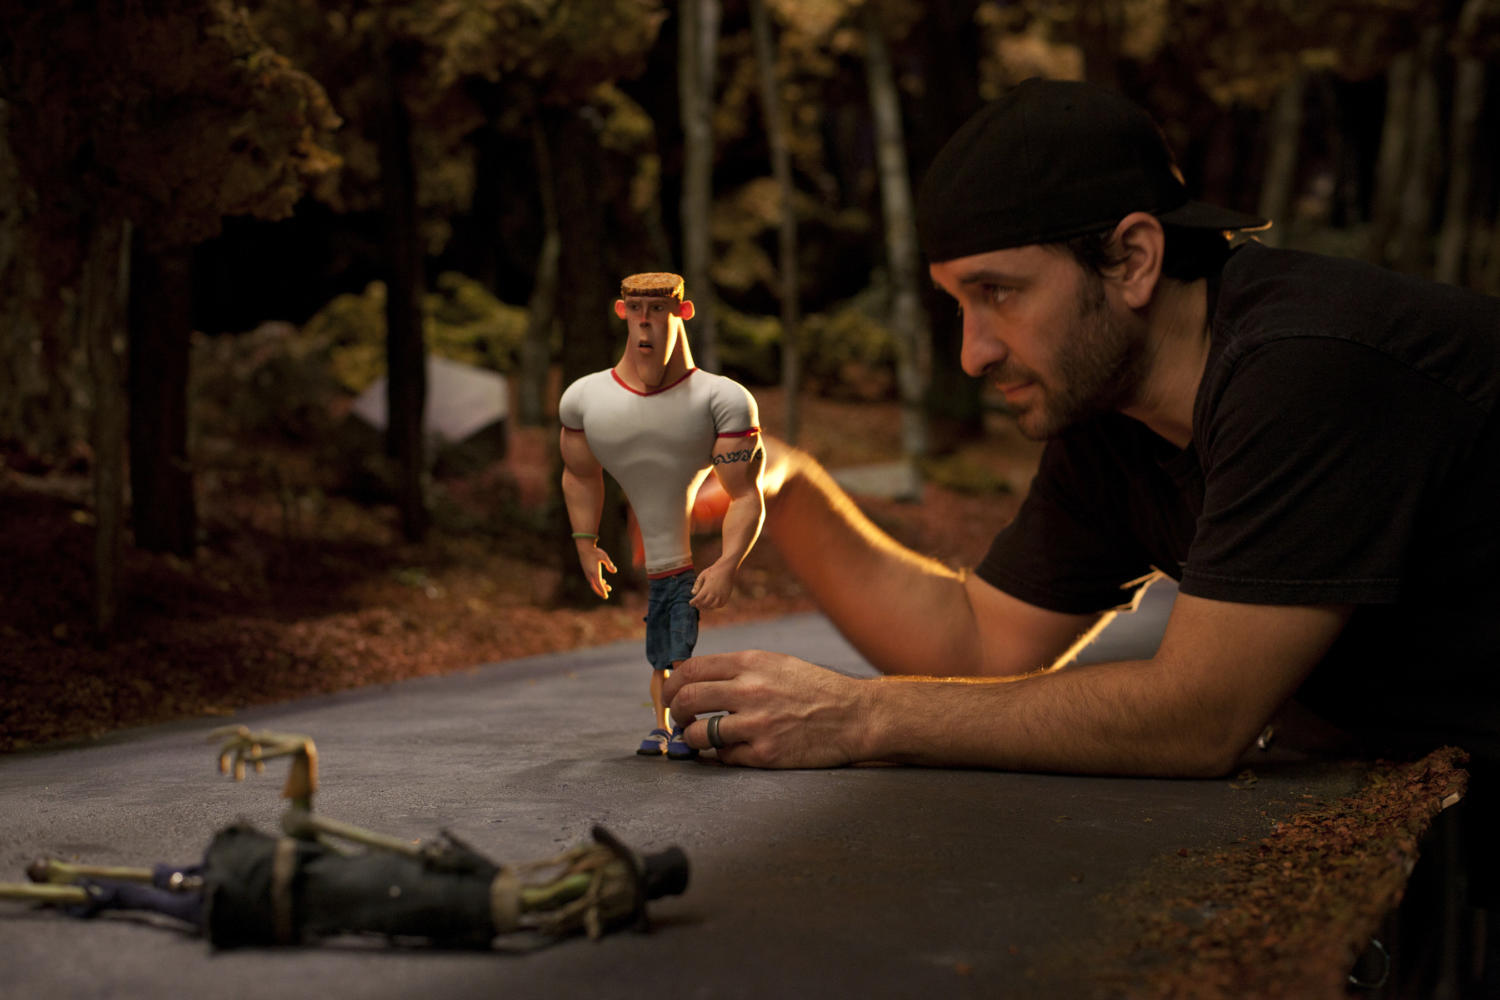 Schiff+positions+a+character+from+Paranorman.+It+was+released+in+2012+by+Laika.